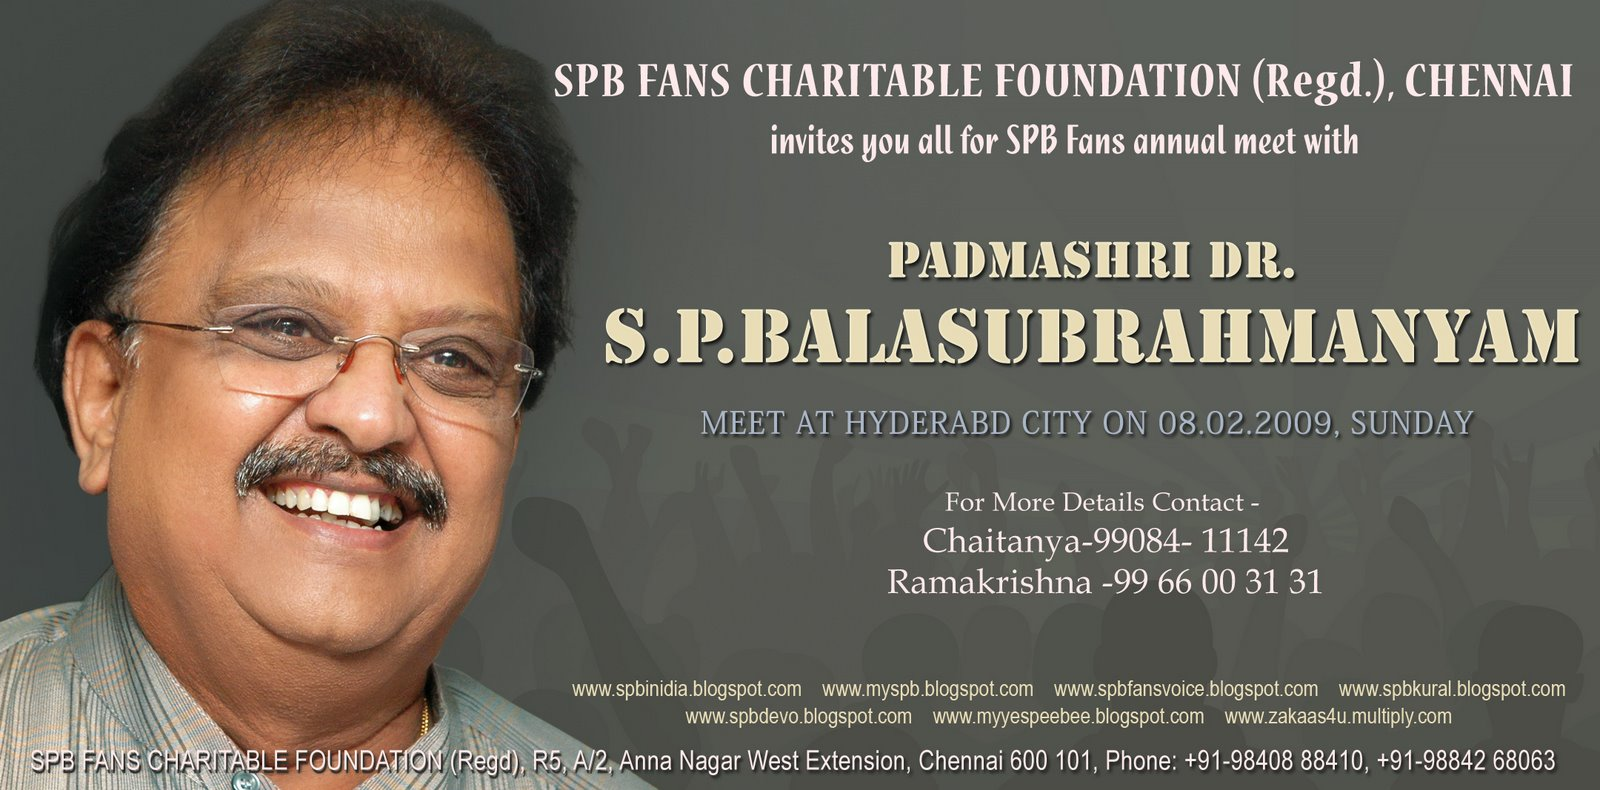 s p balasubrahmanyam family photoss p balasubrahmanyam songs, s p balasubrahmanyam, s p balasubrahmanyam songs mp3, s p balasubrahmanyam songs download, s p balasubrahmanyam mp3, s p balasubrahmanyam wiki, s p balasubramaniam tamil songs, s p balasubrahmanyam songs list, s p balasubramaniam hindi songs, s p balasubrahmanyam family, s p balasubrahmanyam songs free download, s p balasubrahmanyam devotional songs tamil, s. p. balasubrahmanyam kaadhal rojaavae, s p balasubrahmanyam wife, s p balasubrahmanyam family photos, s p balasubrahmanyam son, s p balasubramaniam hit songs